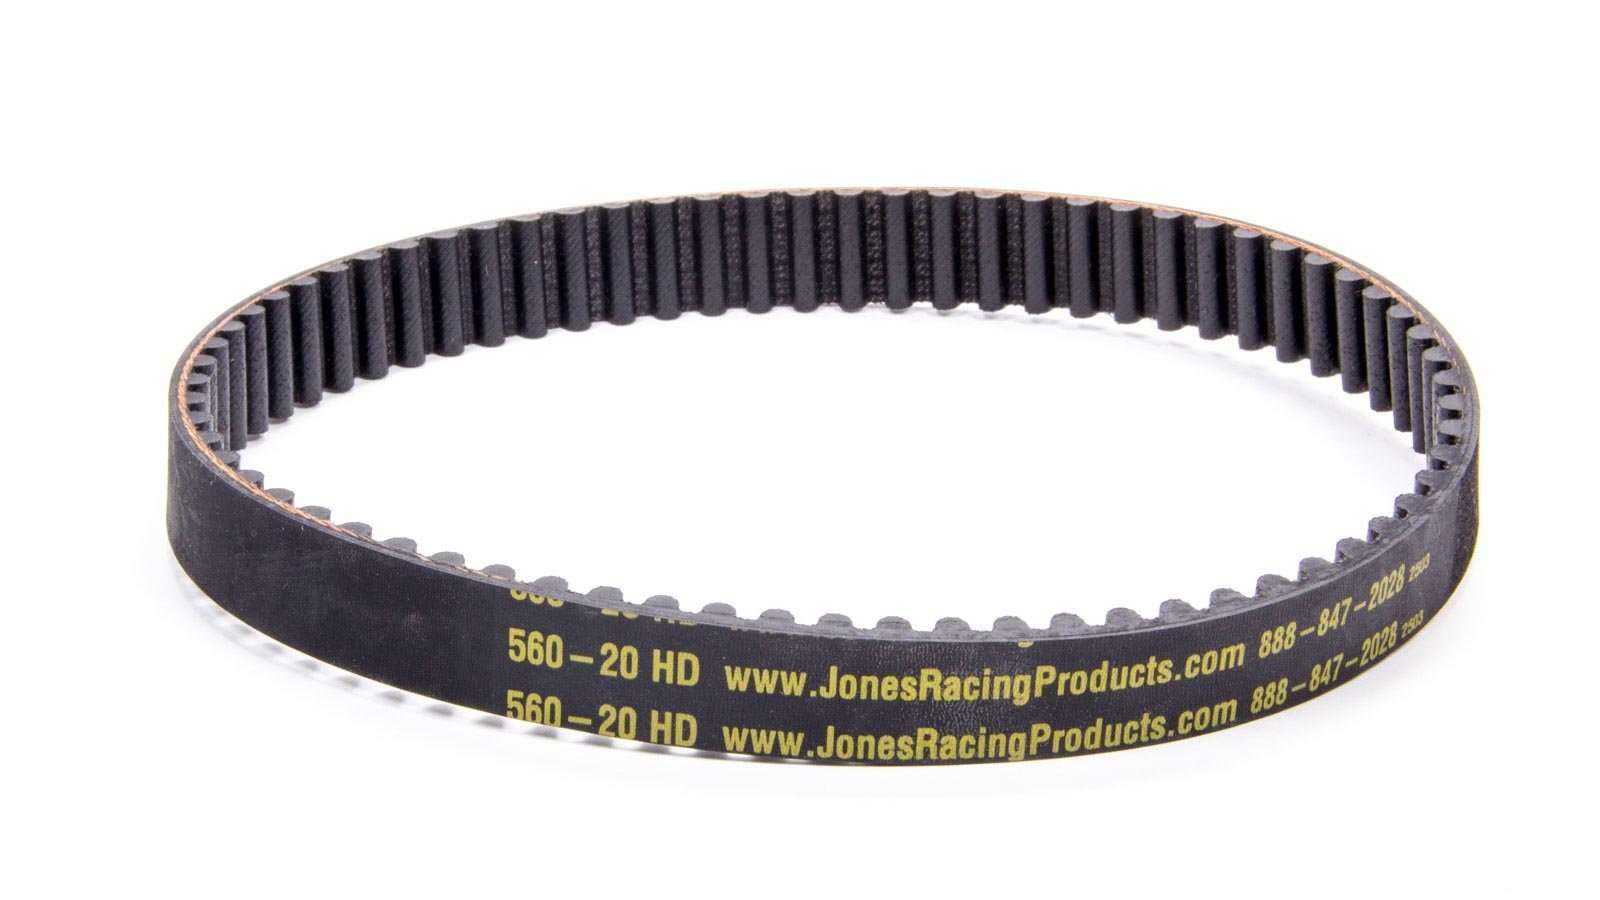 Jones Racing Products 560-20HD HTD Belt